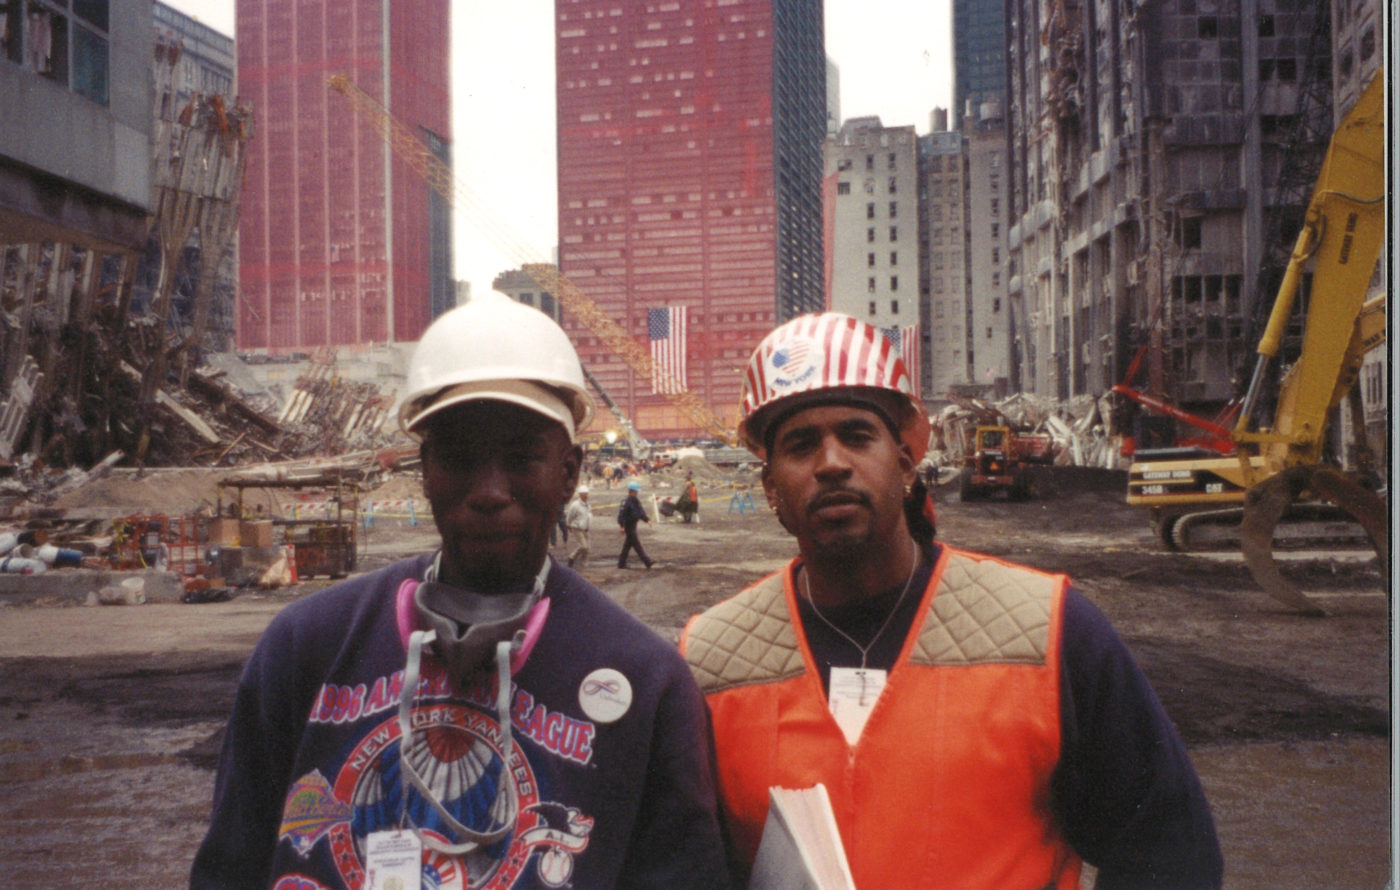 Two Unknown Workers, one with a Love New York Sticker, Stop for a Photo at Ground Zero